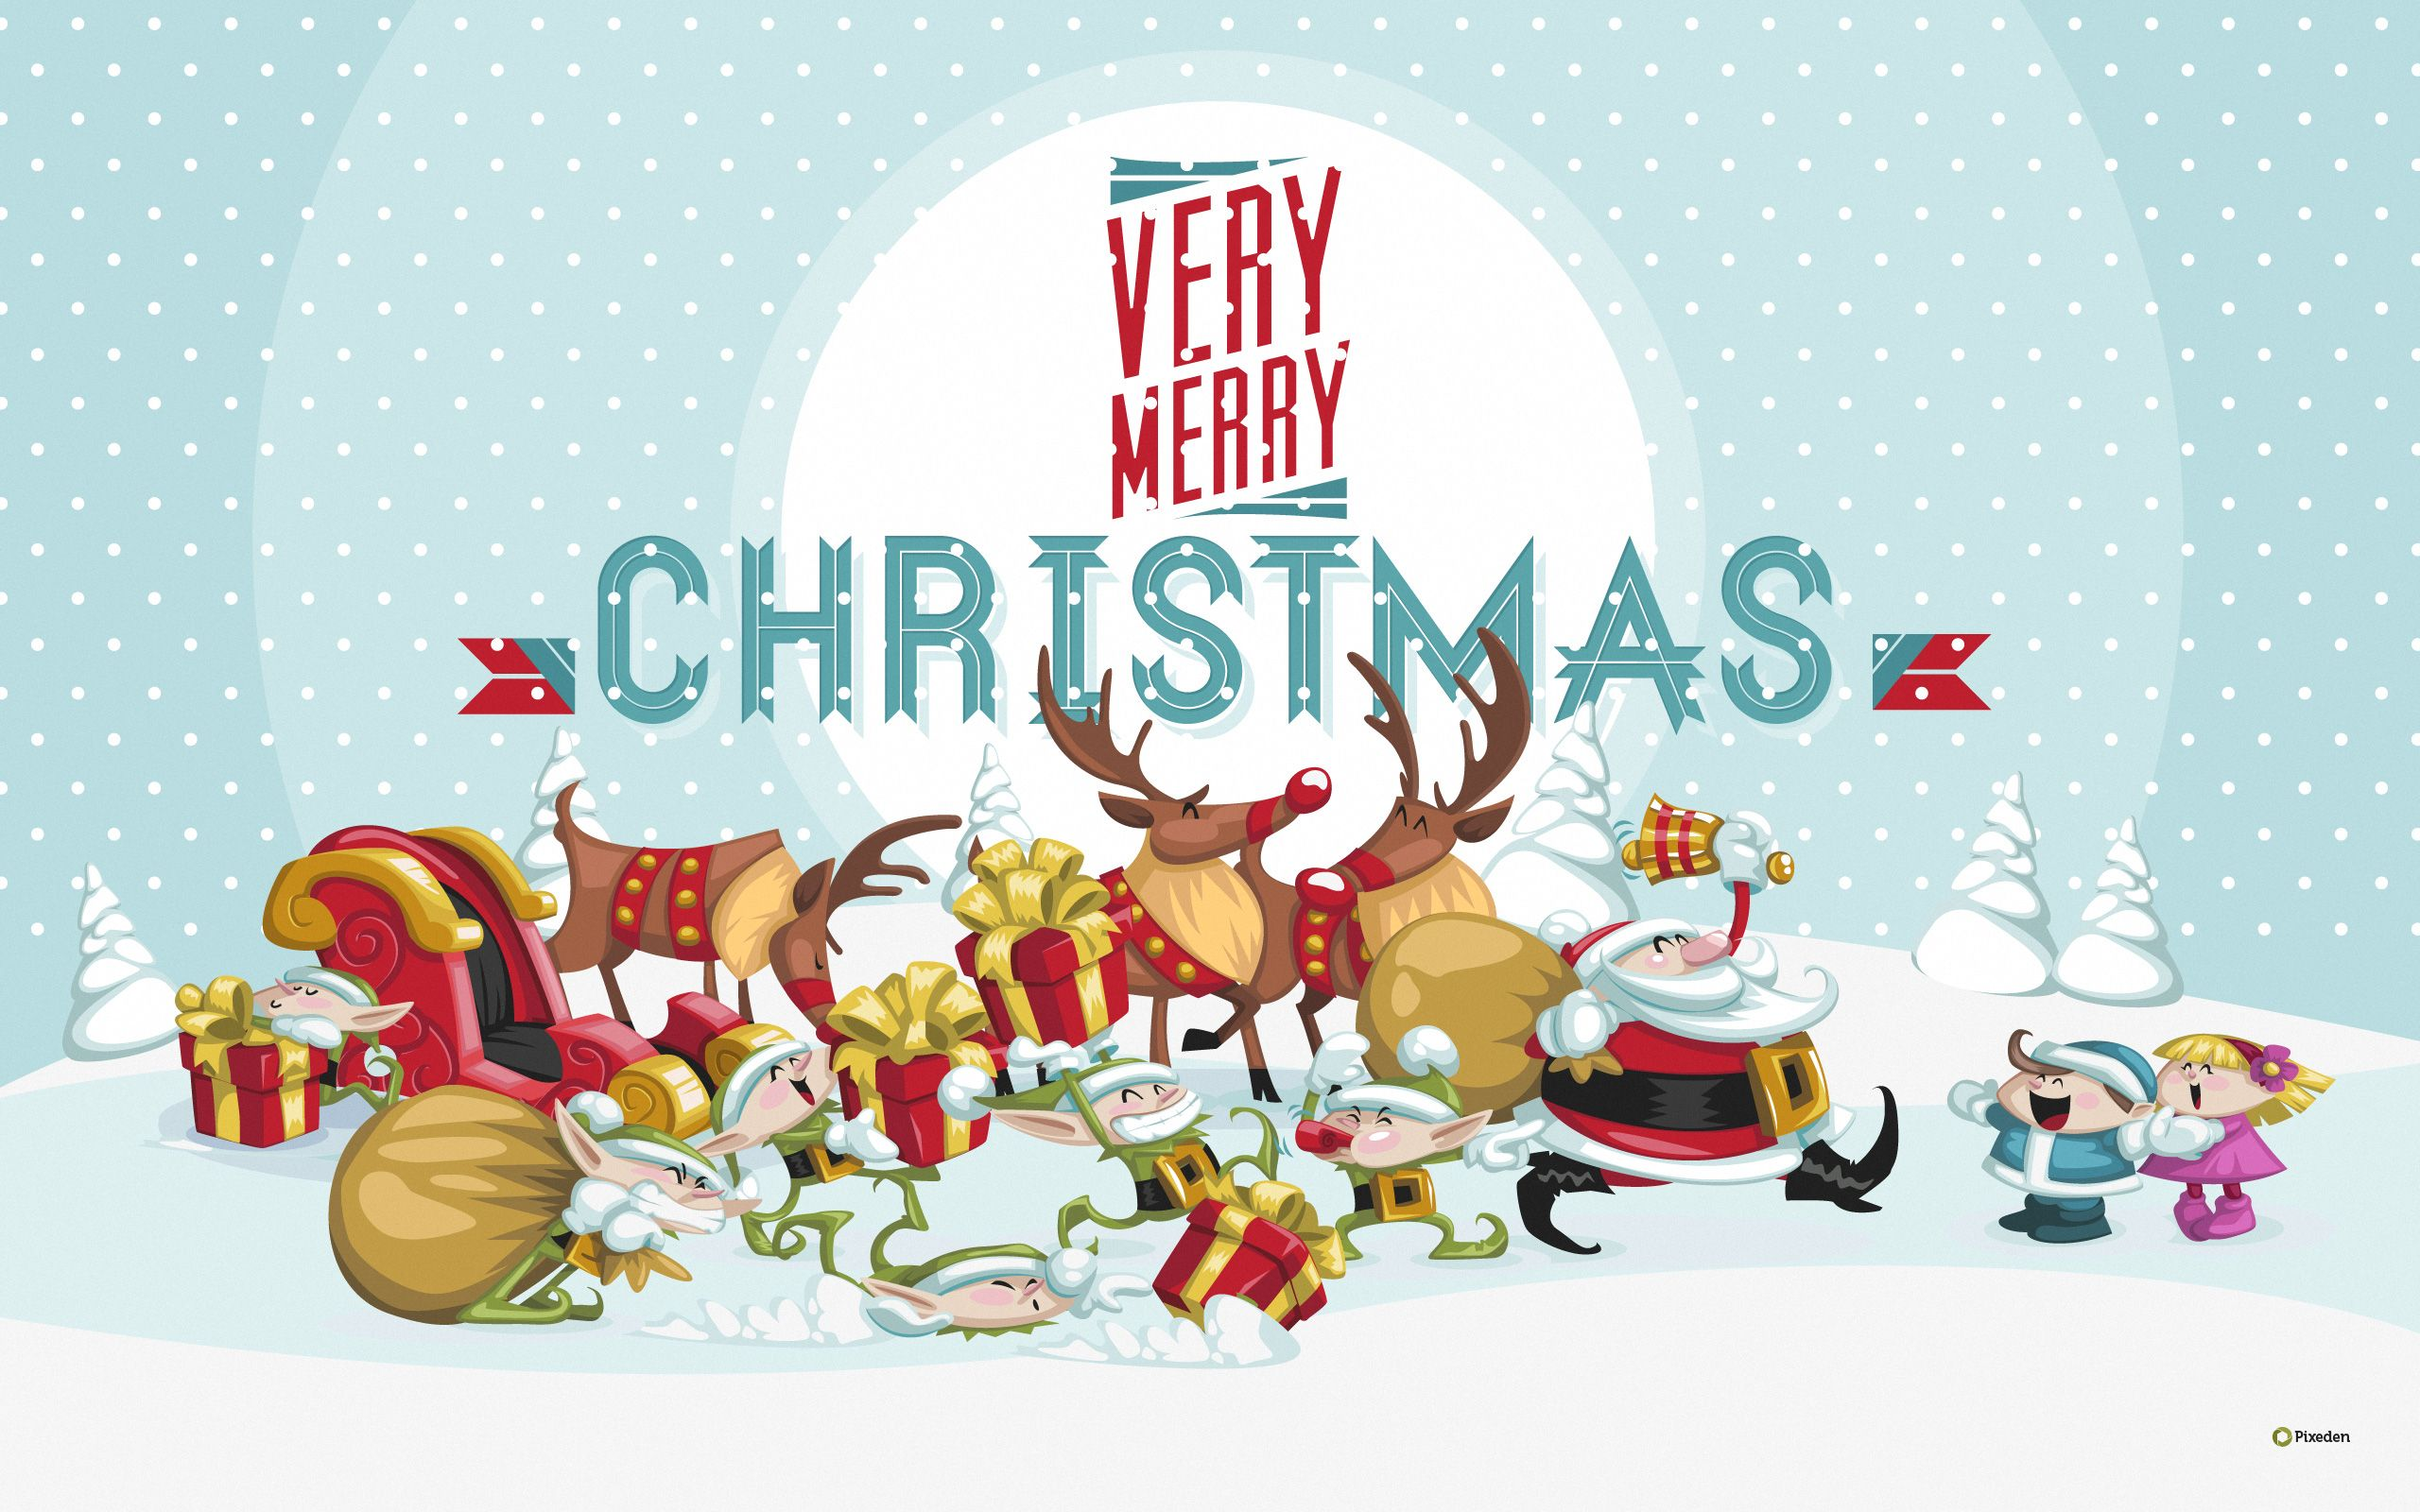 merry christmas wallpaper free christmas wallpaper | wallpapers 4k